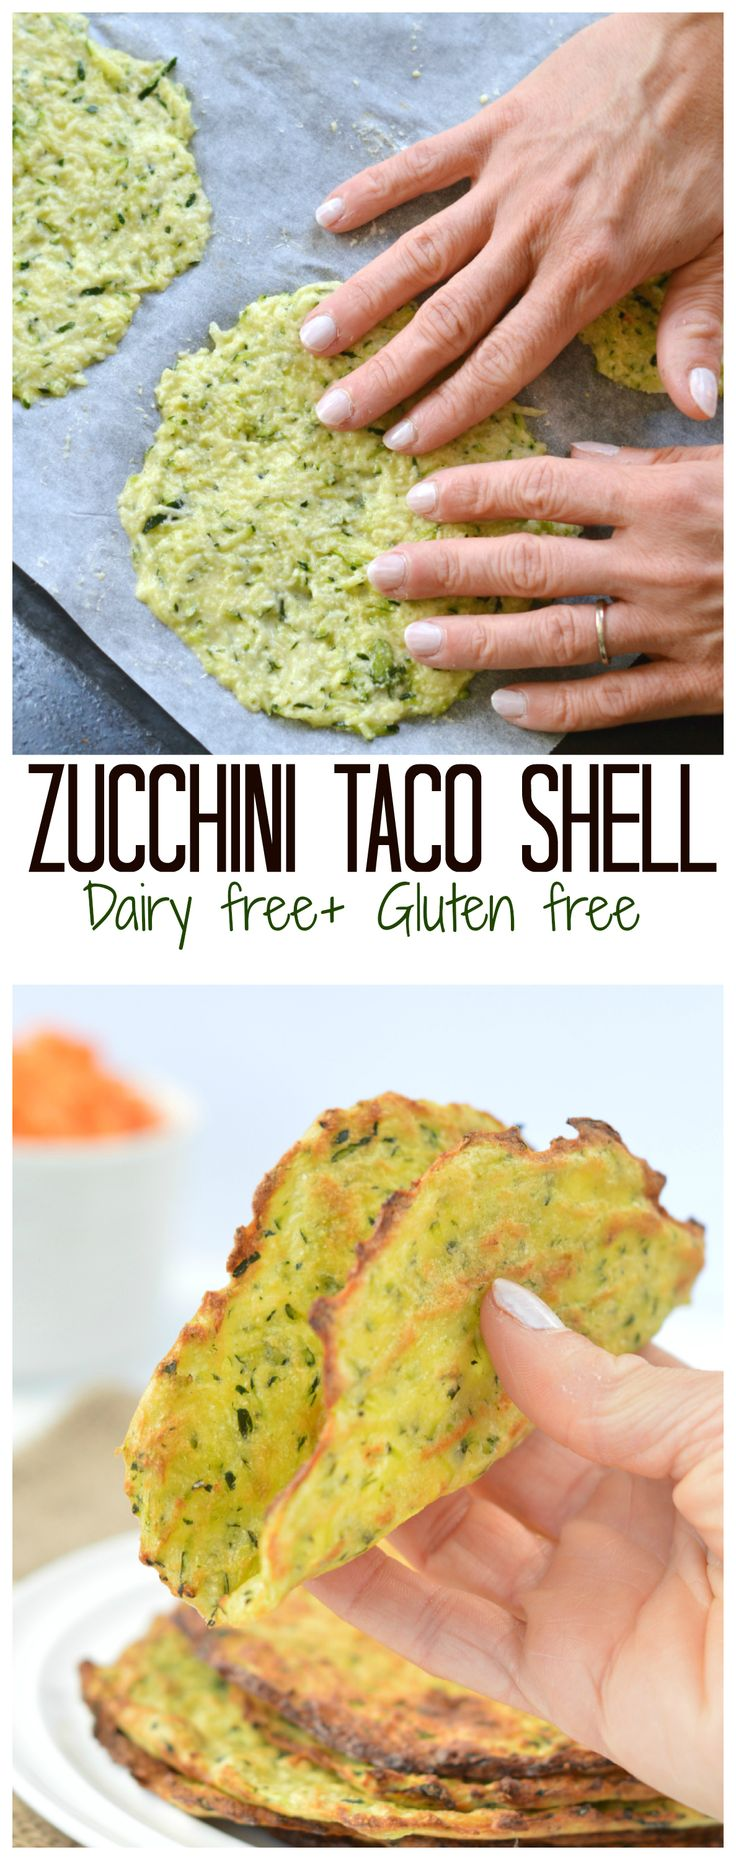 Those Zucchini Taco Shell are a super healthy soft taco idea for your next party! Thin, soft and won't crack! Easy to use as a tortilla or soft taco shell. No cheese in this recipe but healthy coconut flour and more! Click and get your recipe for your next game night! #tortilla #taco #shell #mexican #zucchini #coconut #coconutflour #arrowrootflour #grainfree #glutenfree #dairyfree